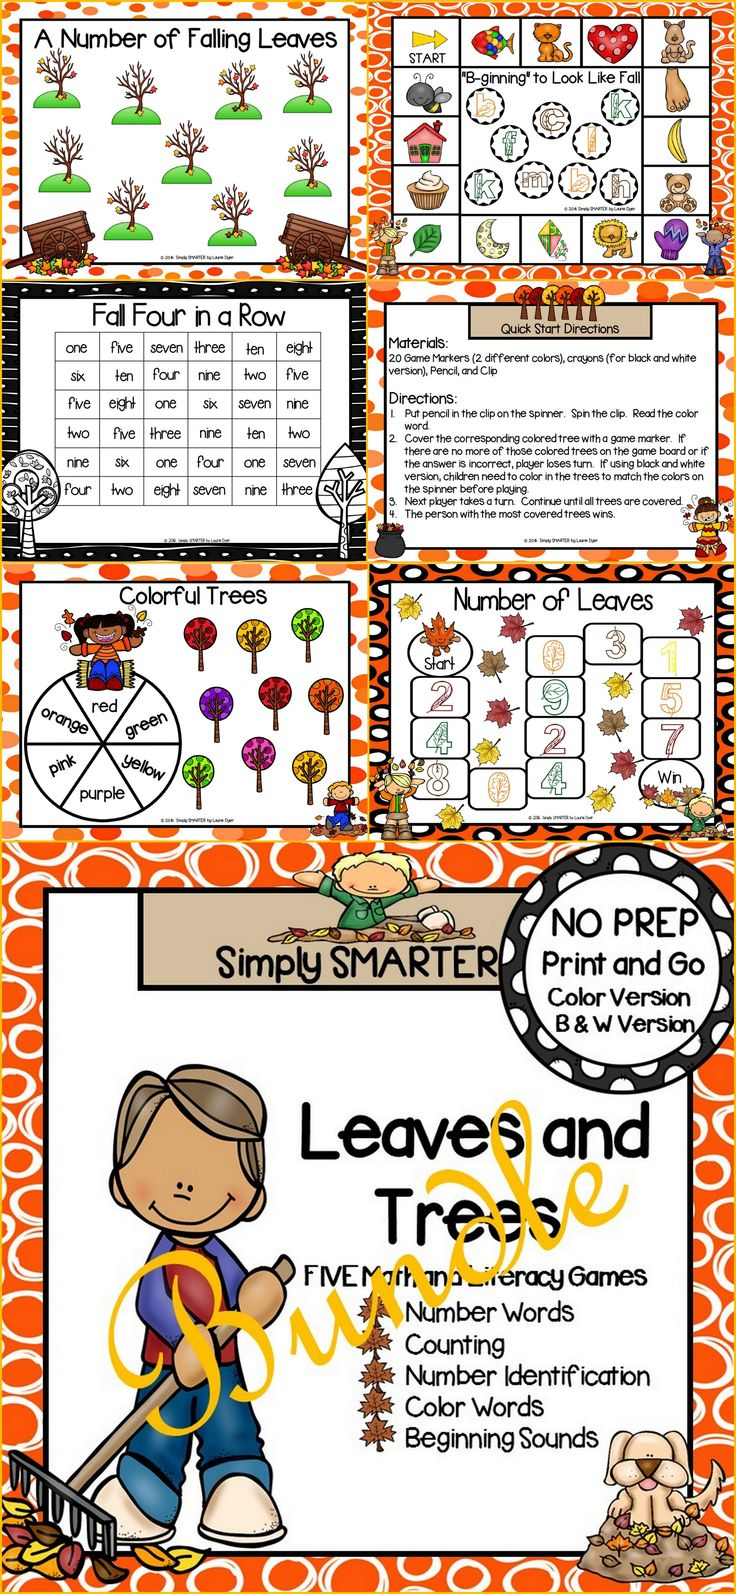 Are you looking for NO PREP literacy and math games for preschool, kindergarten, or first grade? Then download this bundle and go!  Enjoy this phonics and math resource which is comprised of FIVE different LEAVES AND TREES themed games complete with a color version and black and white version of each game.  The games can be used for small group work, partner collaboration, or homework!